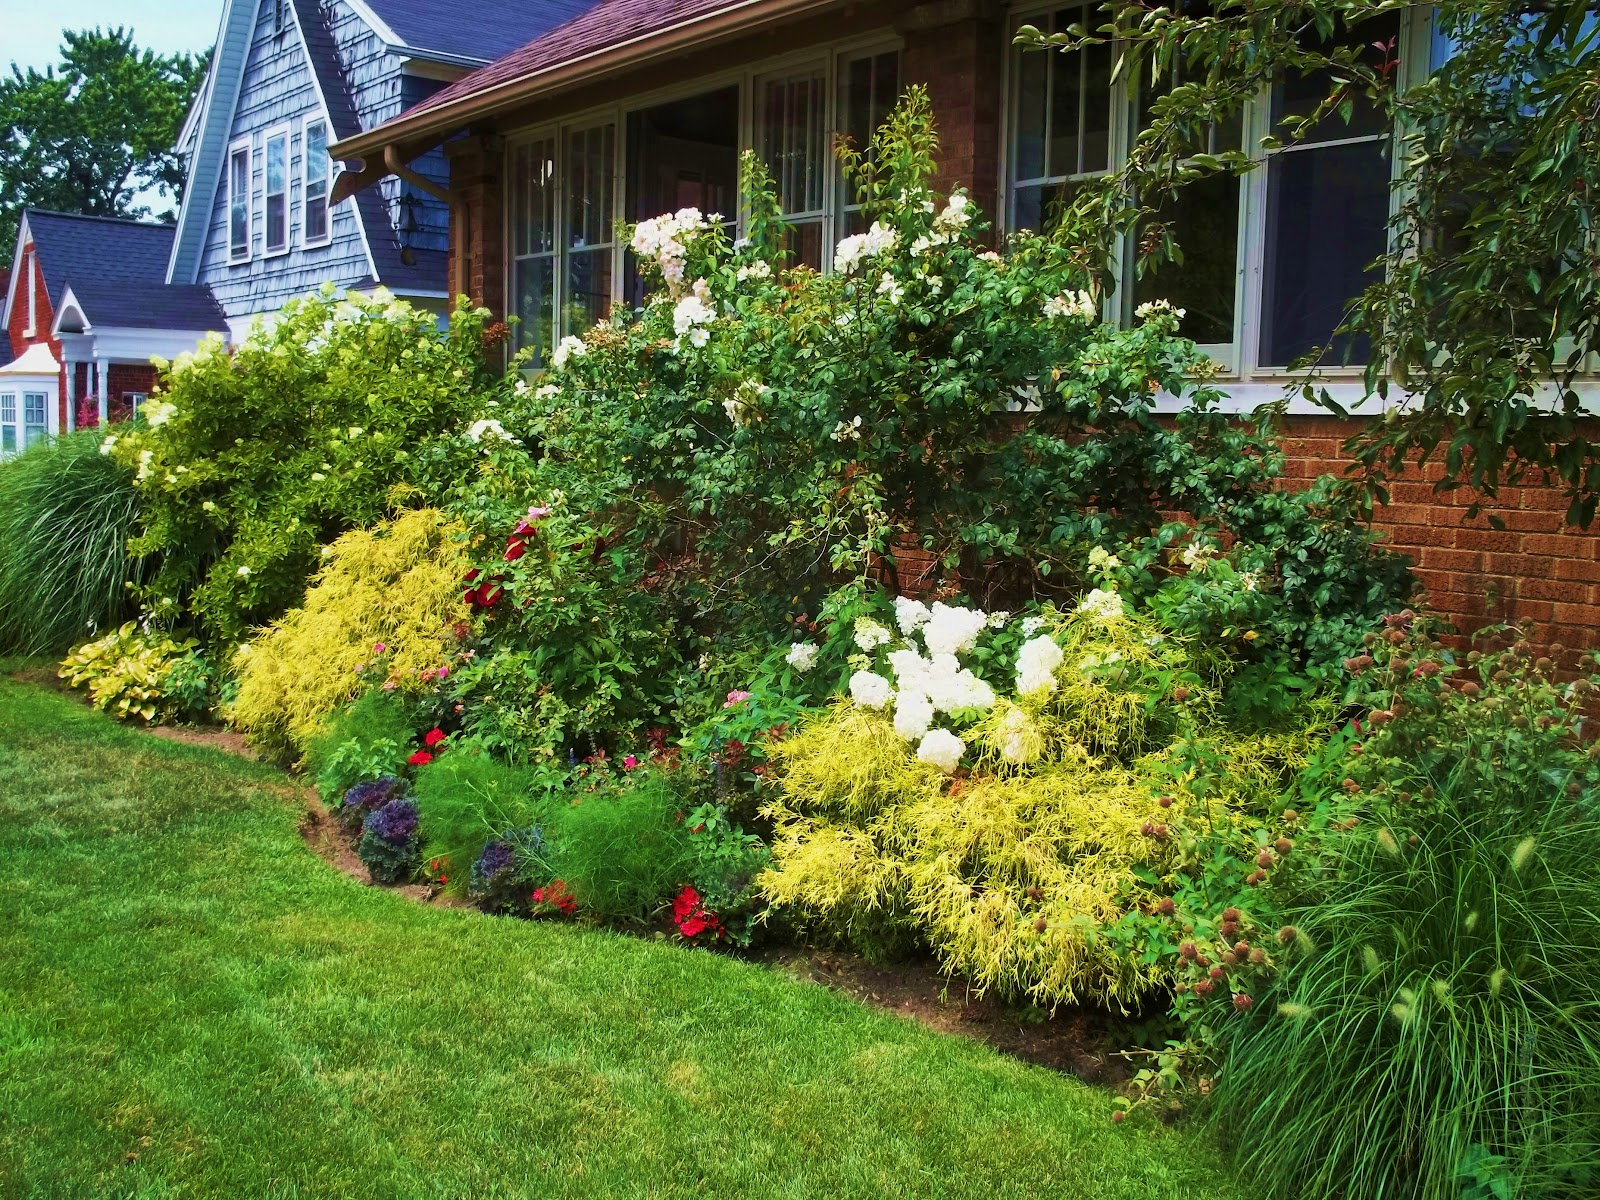 Digging in the dirt a cottage style garden for Cottage garden ideas